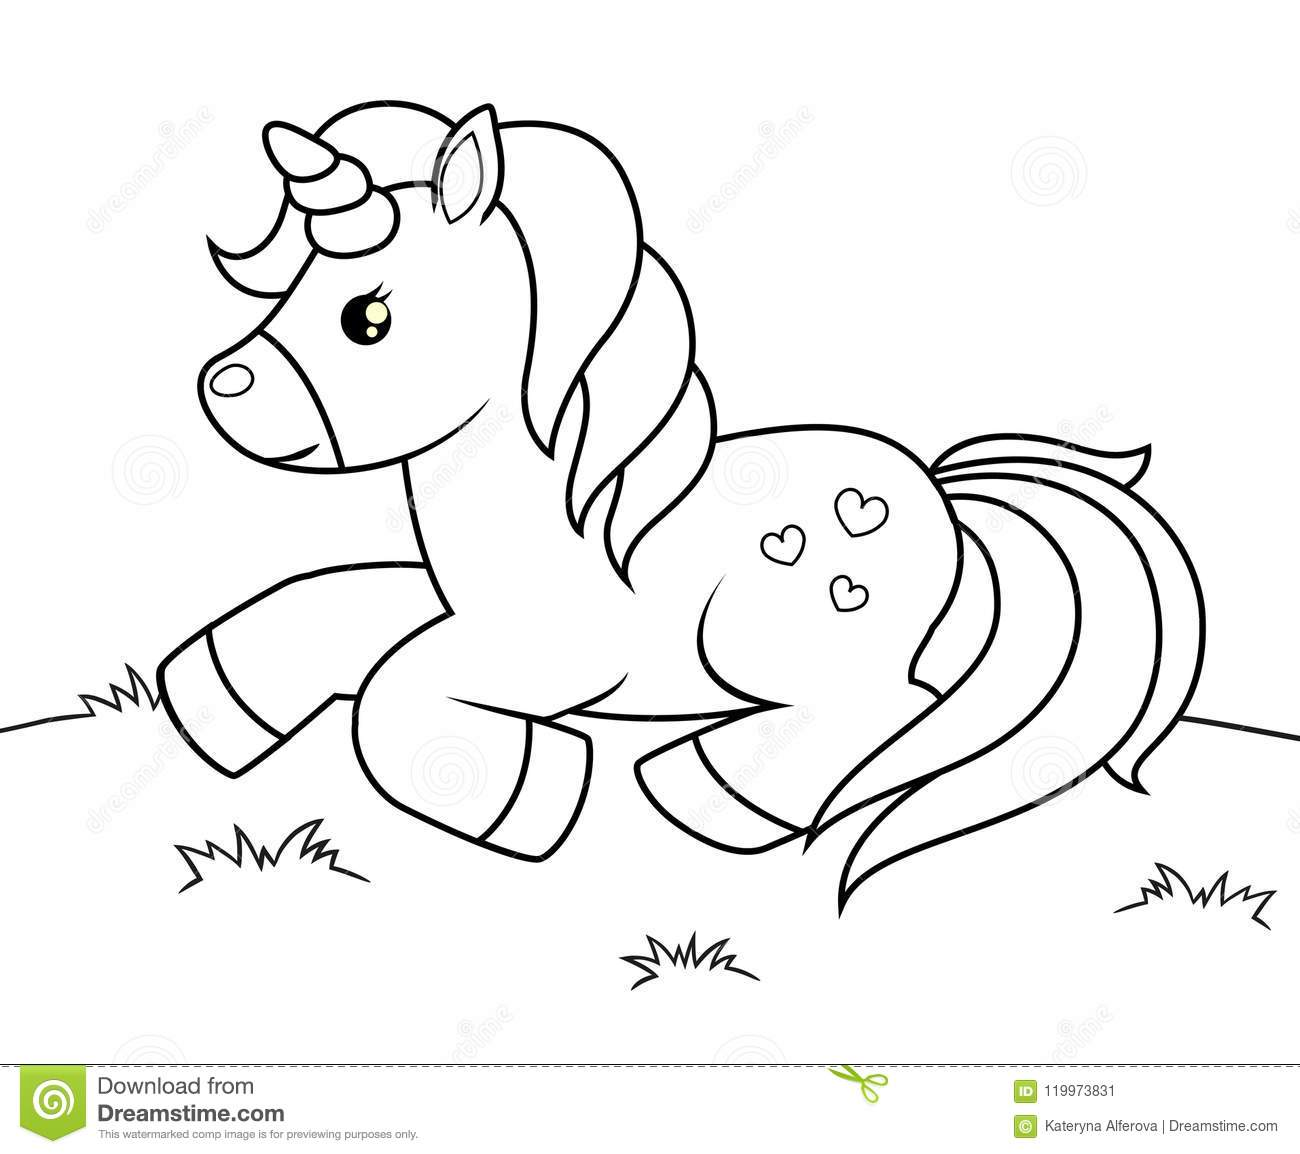 Cute Cartoon Unicorn Black And White Vector Illustration For Coloring Book Stock Vector